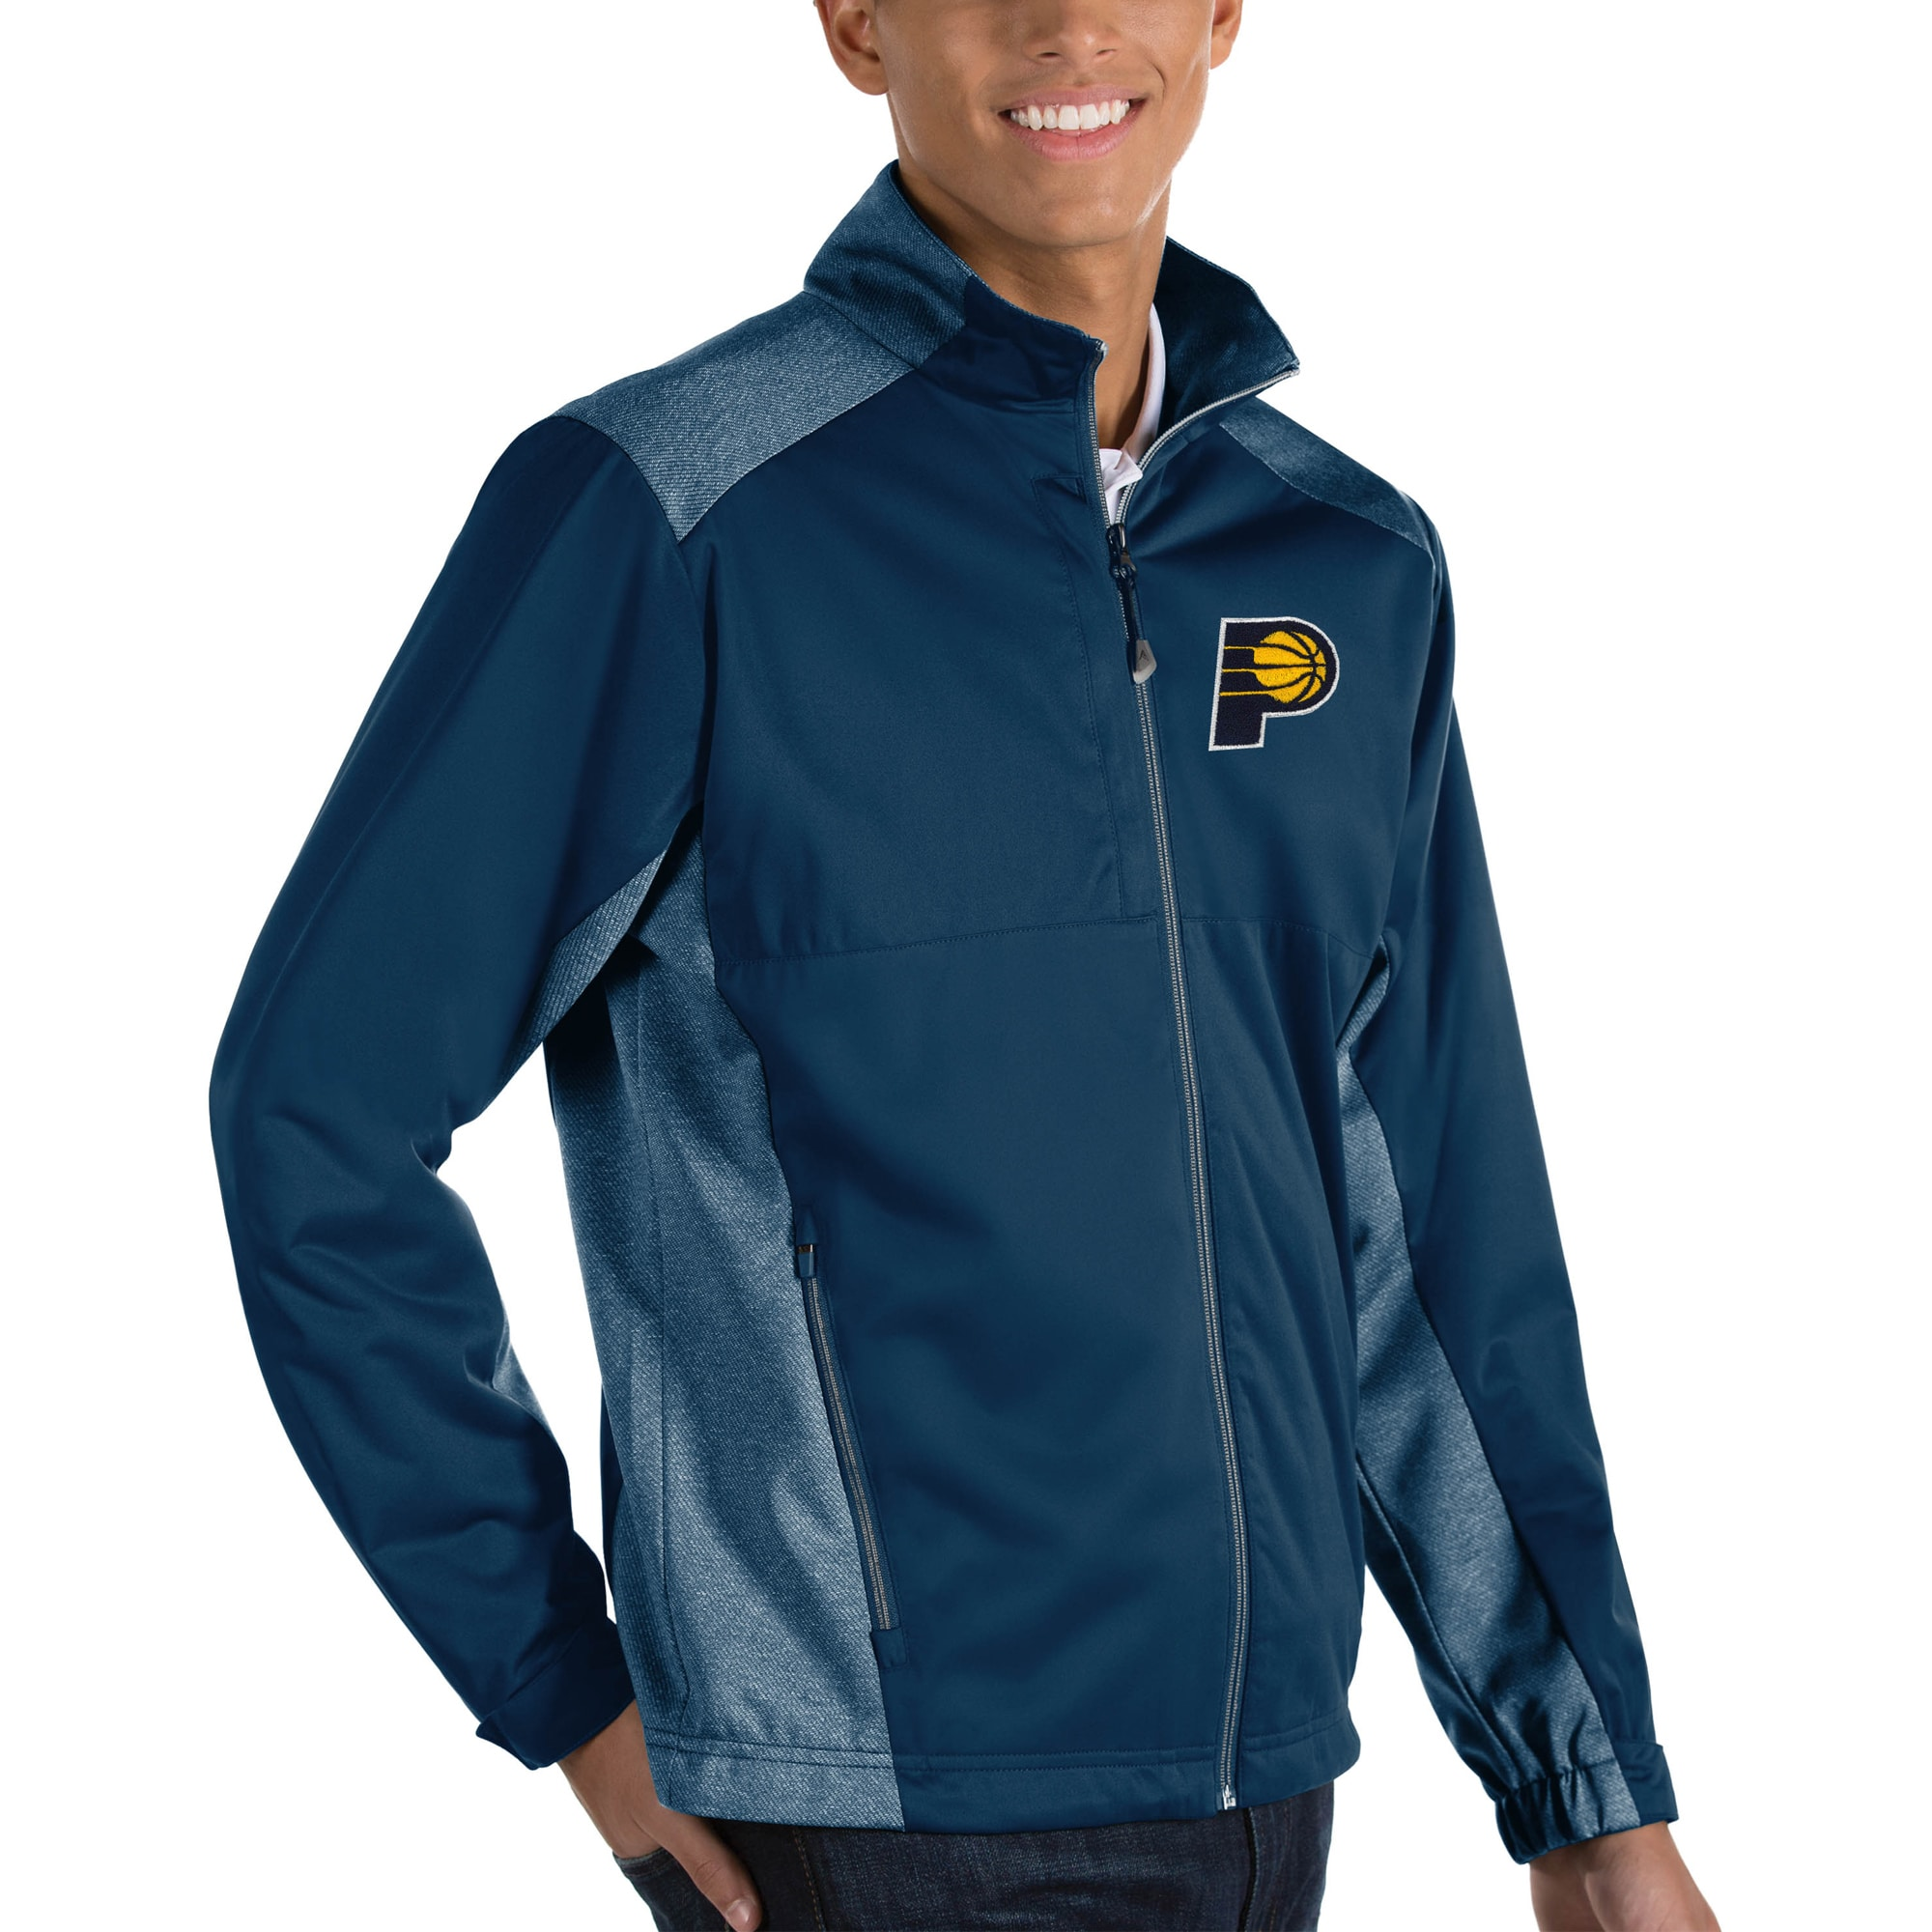 Indiana Pacers Antigua Revolve Big & Tall Full-Zip Jacket - Navy